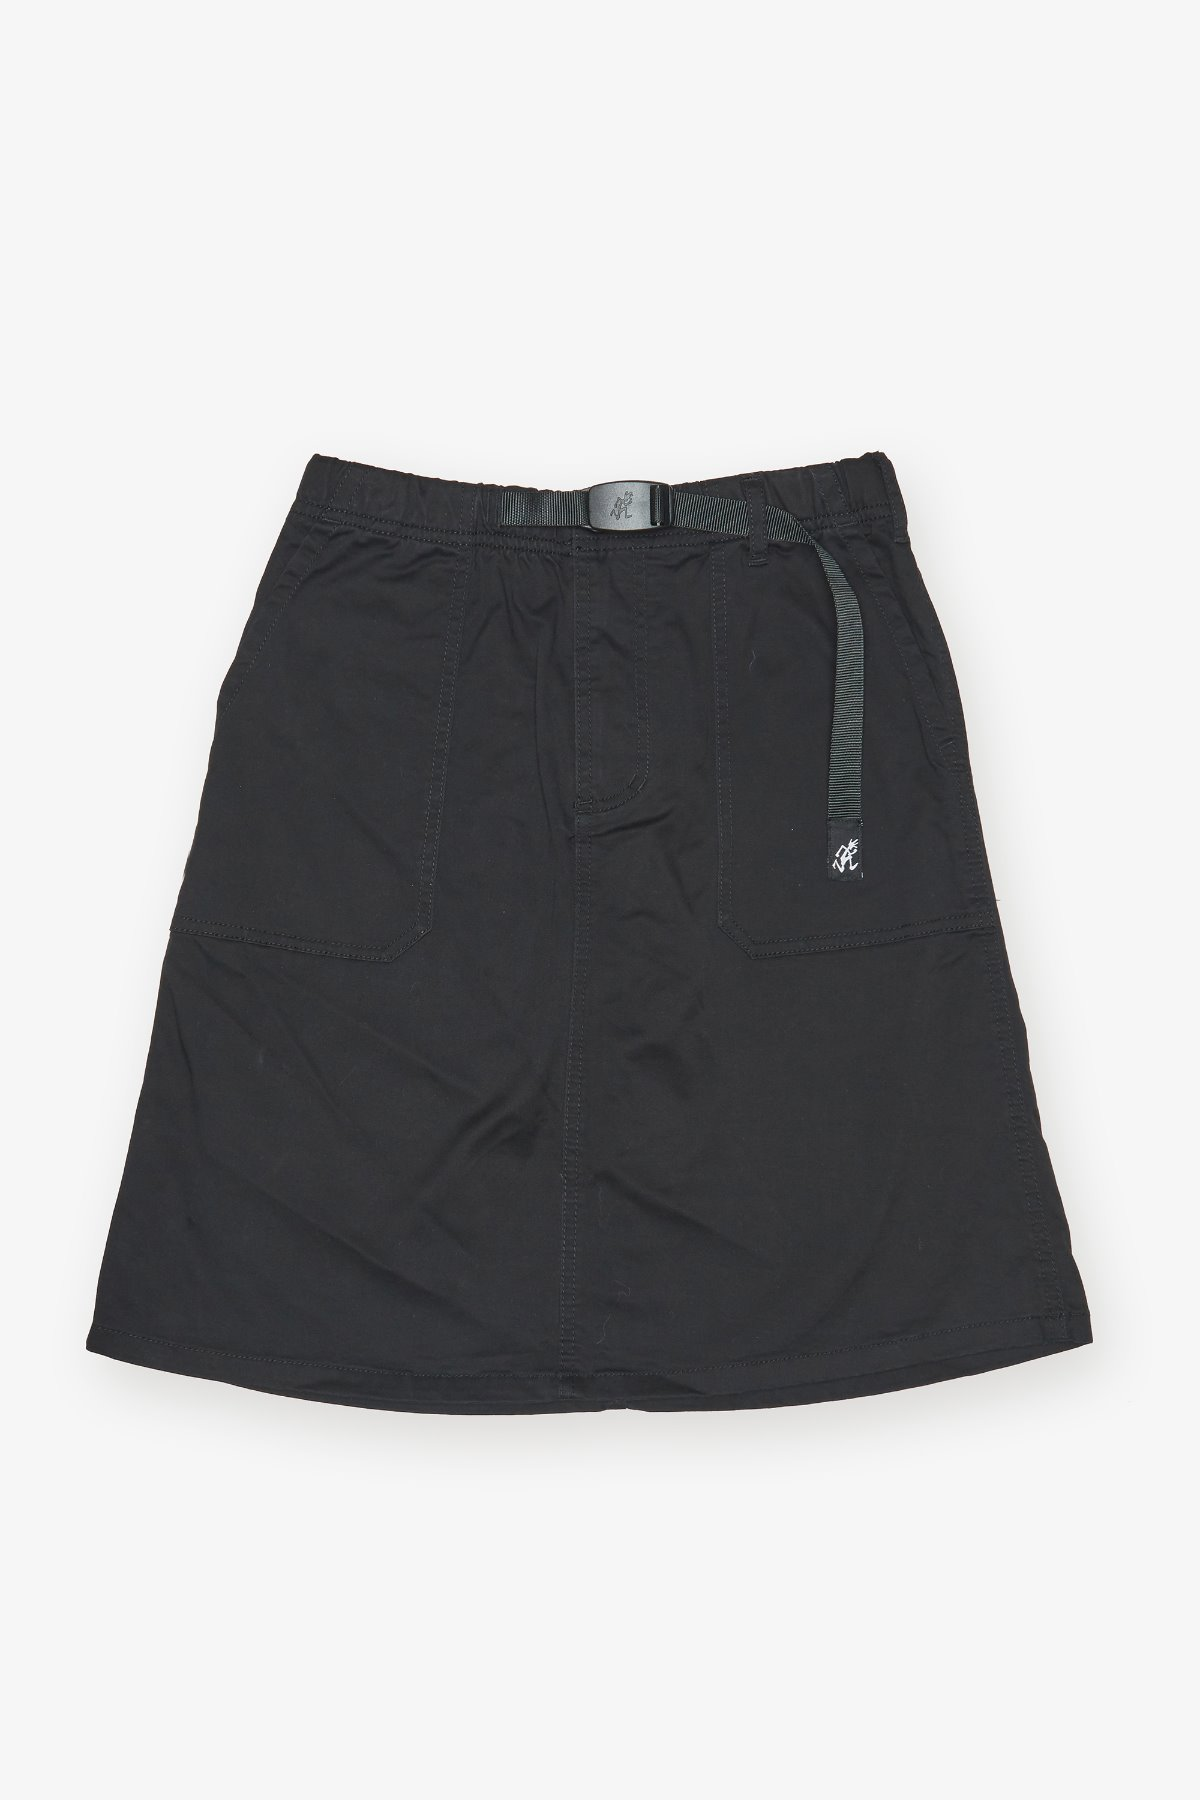 MIDDLE CUT SKIRT BLACK